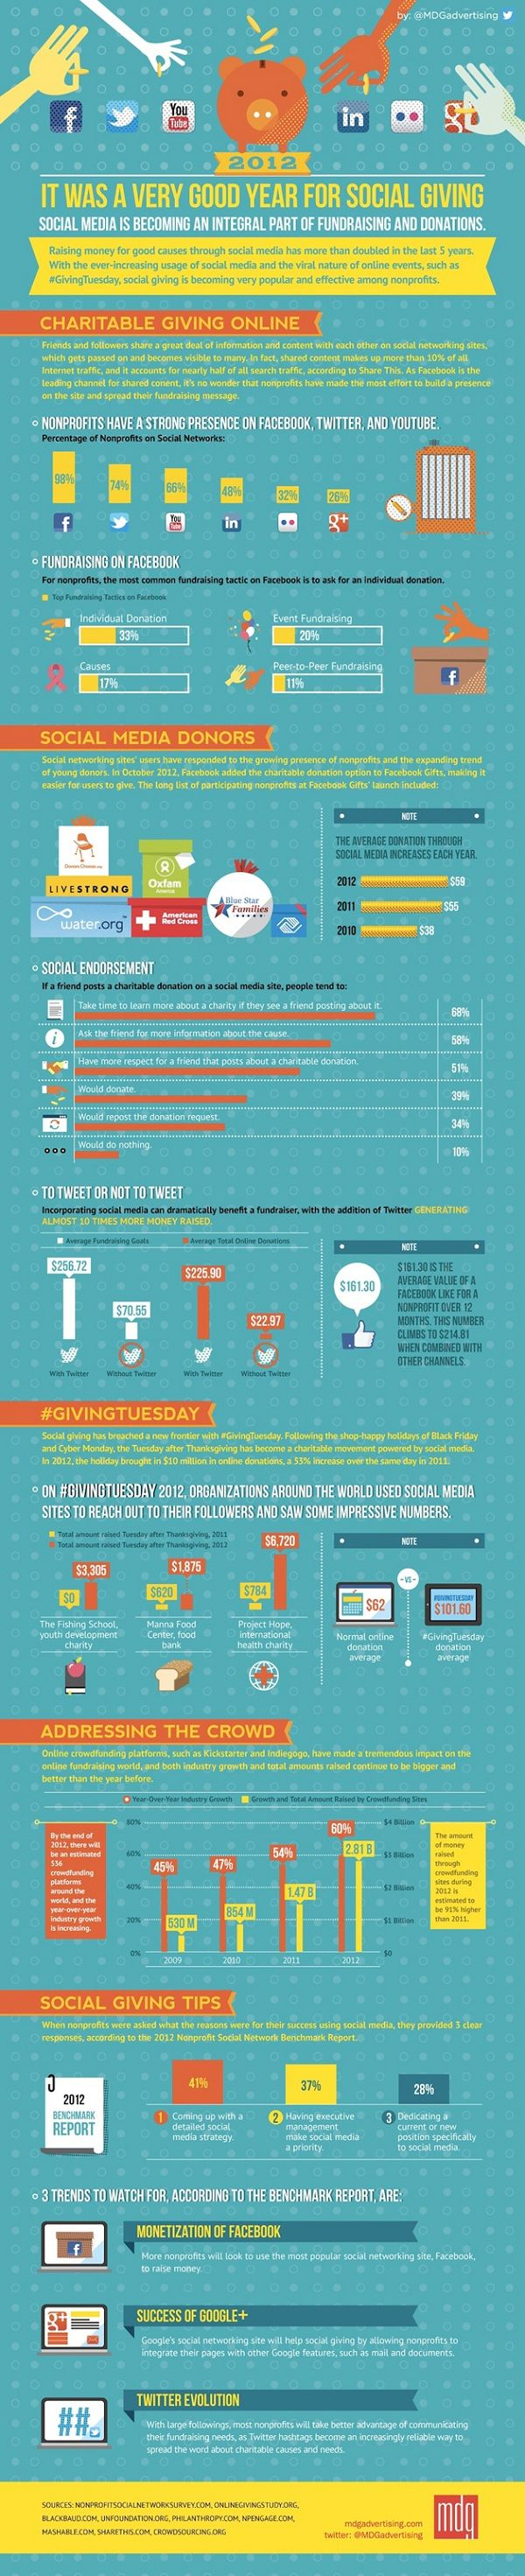 Infographic: #SocialMedia's Impact on Giving in 2012  #nonprofit